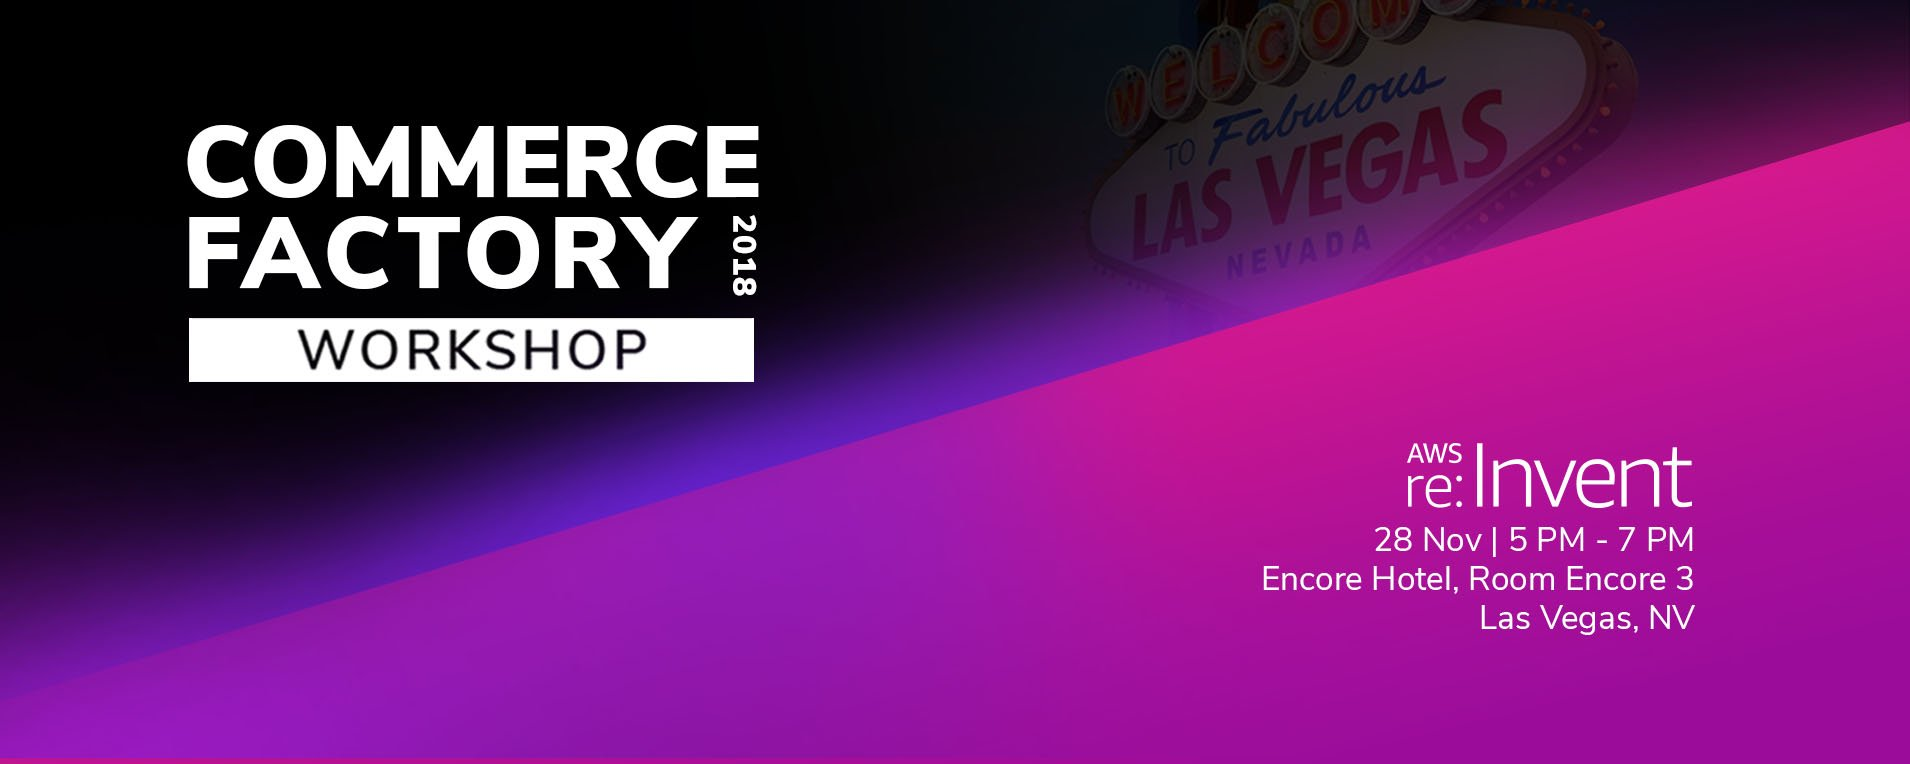 Experience Headless Commerce at AWS re:Invent 2018